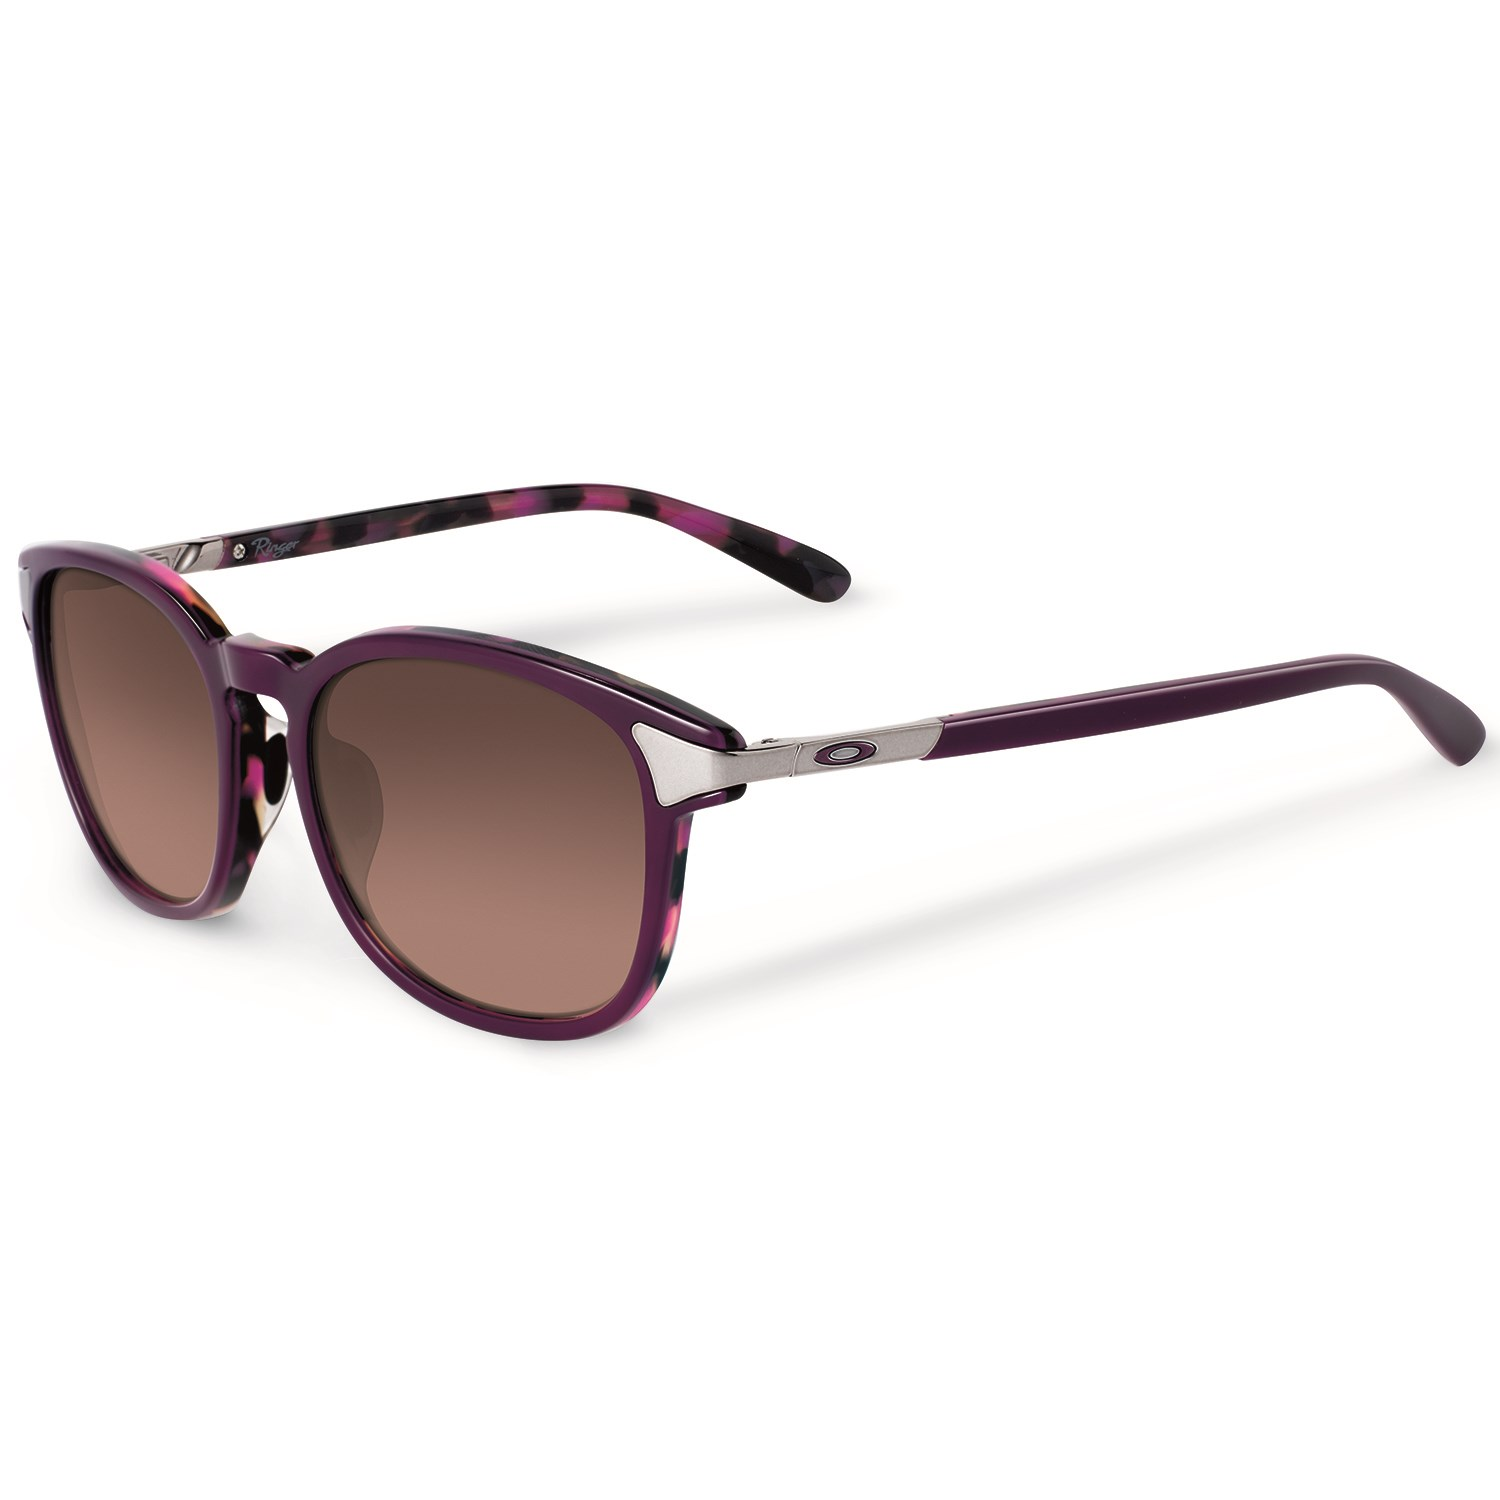 ladies oakley sunglasses  Oakley Ringer Sunglasses - Women\u0027s